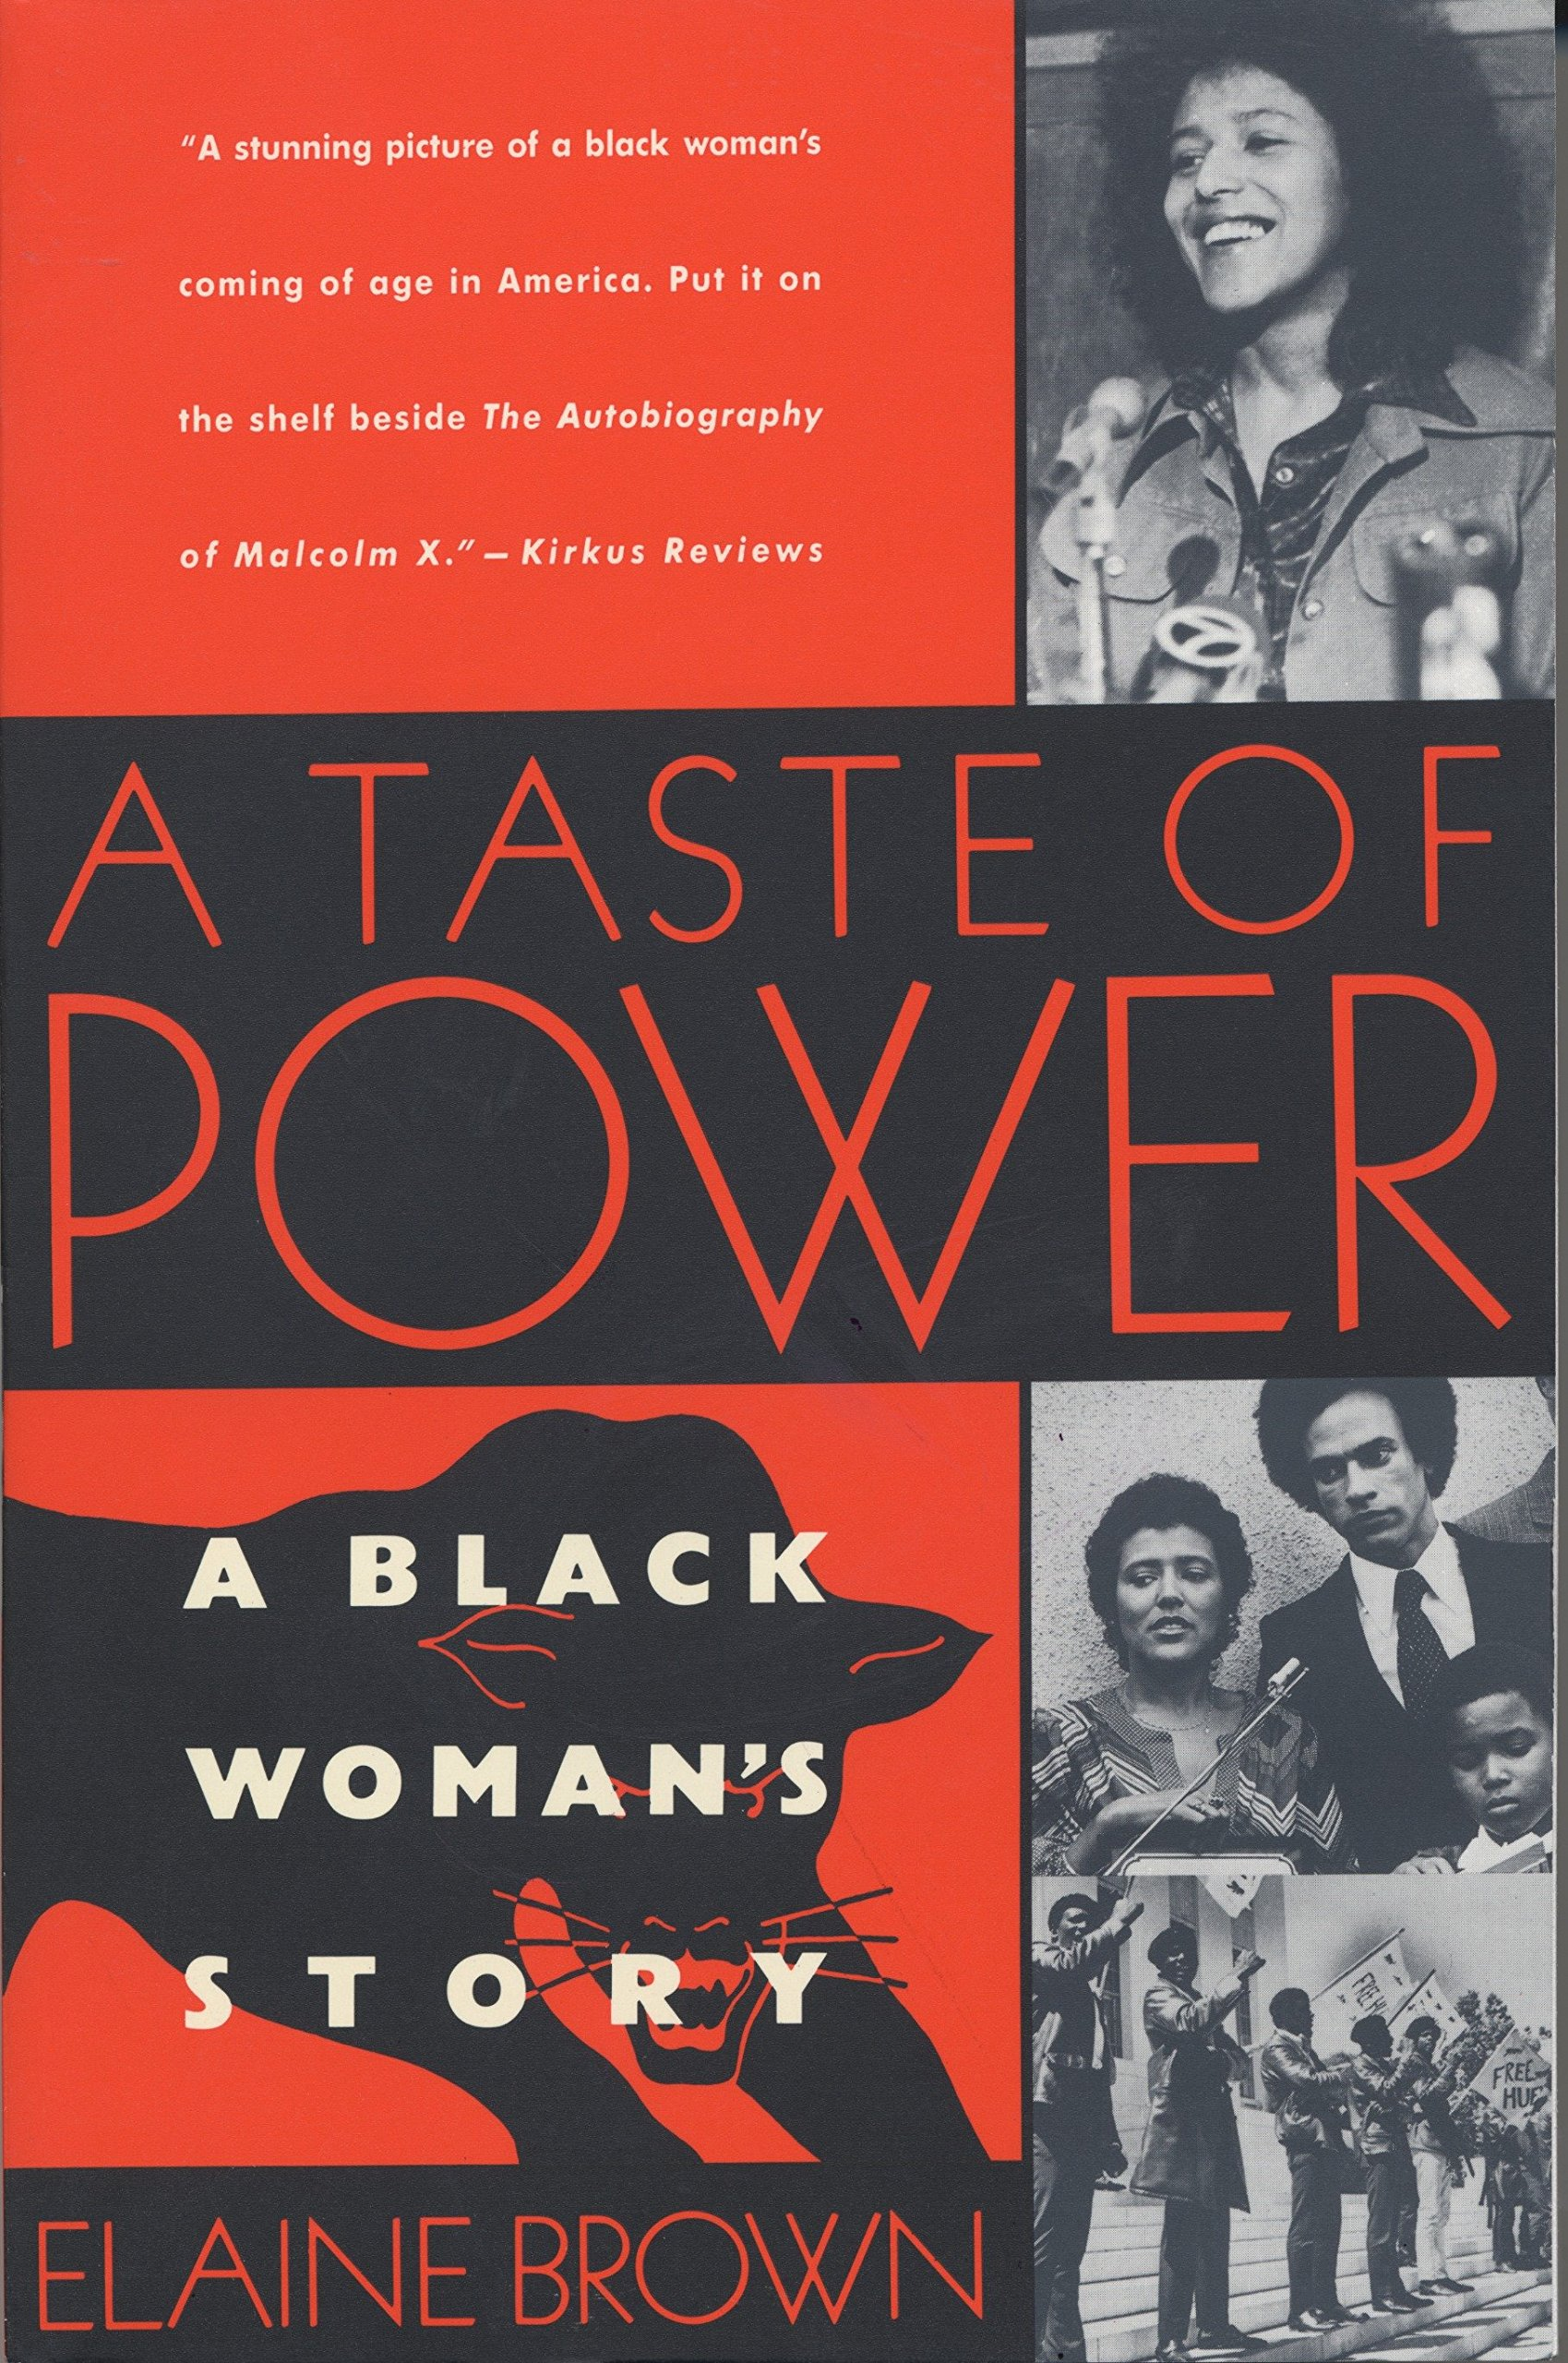 Image result for a taste of power elaine brown